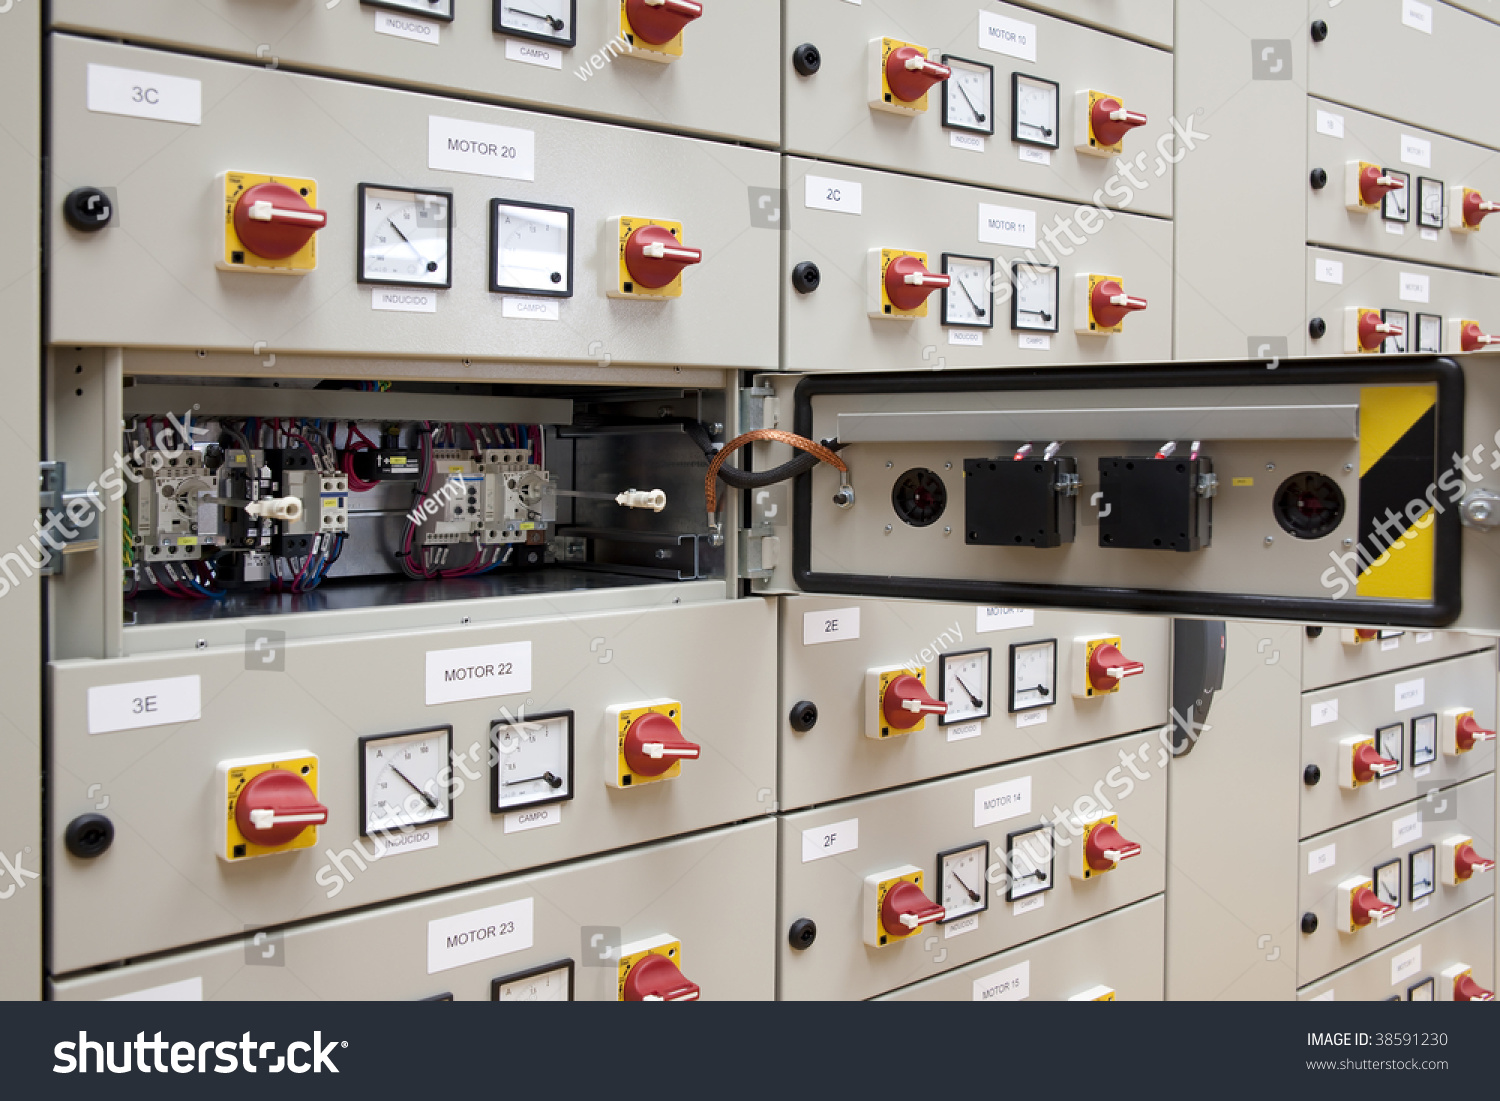 Electrical Panel Board Motors Control Stock Photo (Edit Now ...